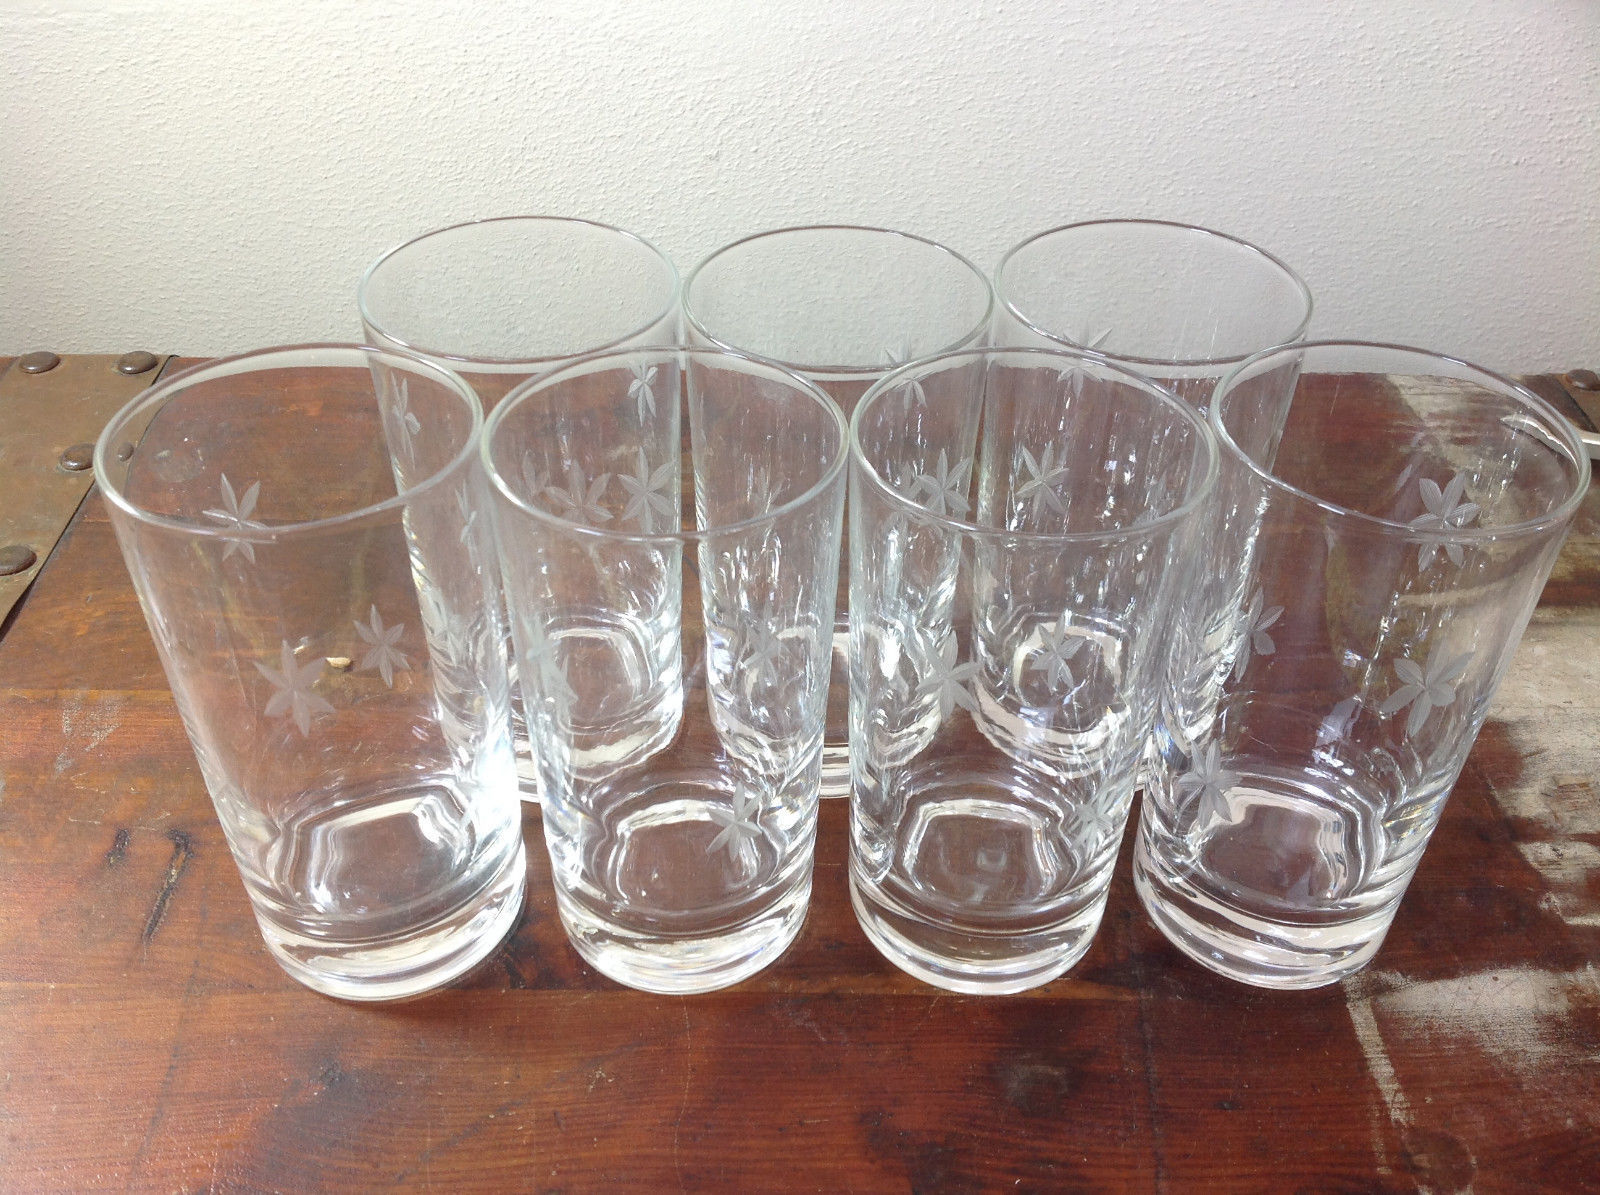 Seven Piece Set of Short Water Glasses Handmade Copper Wheel Engraving